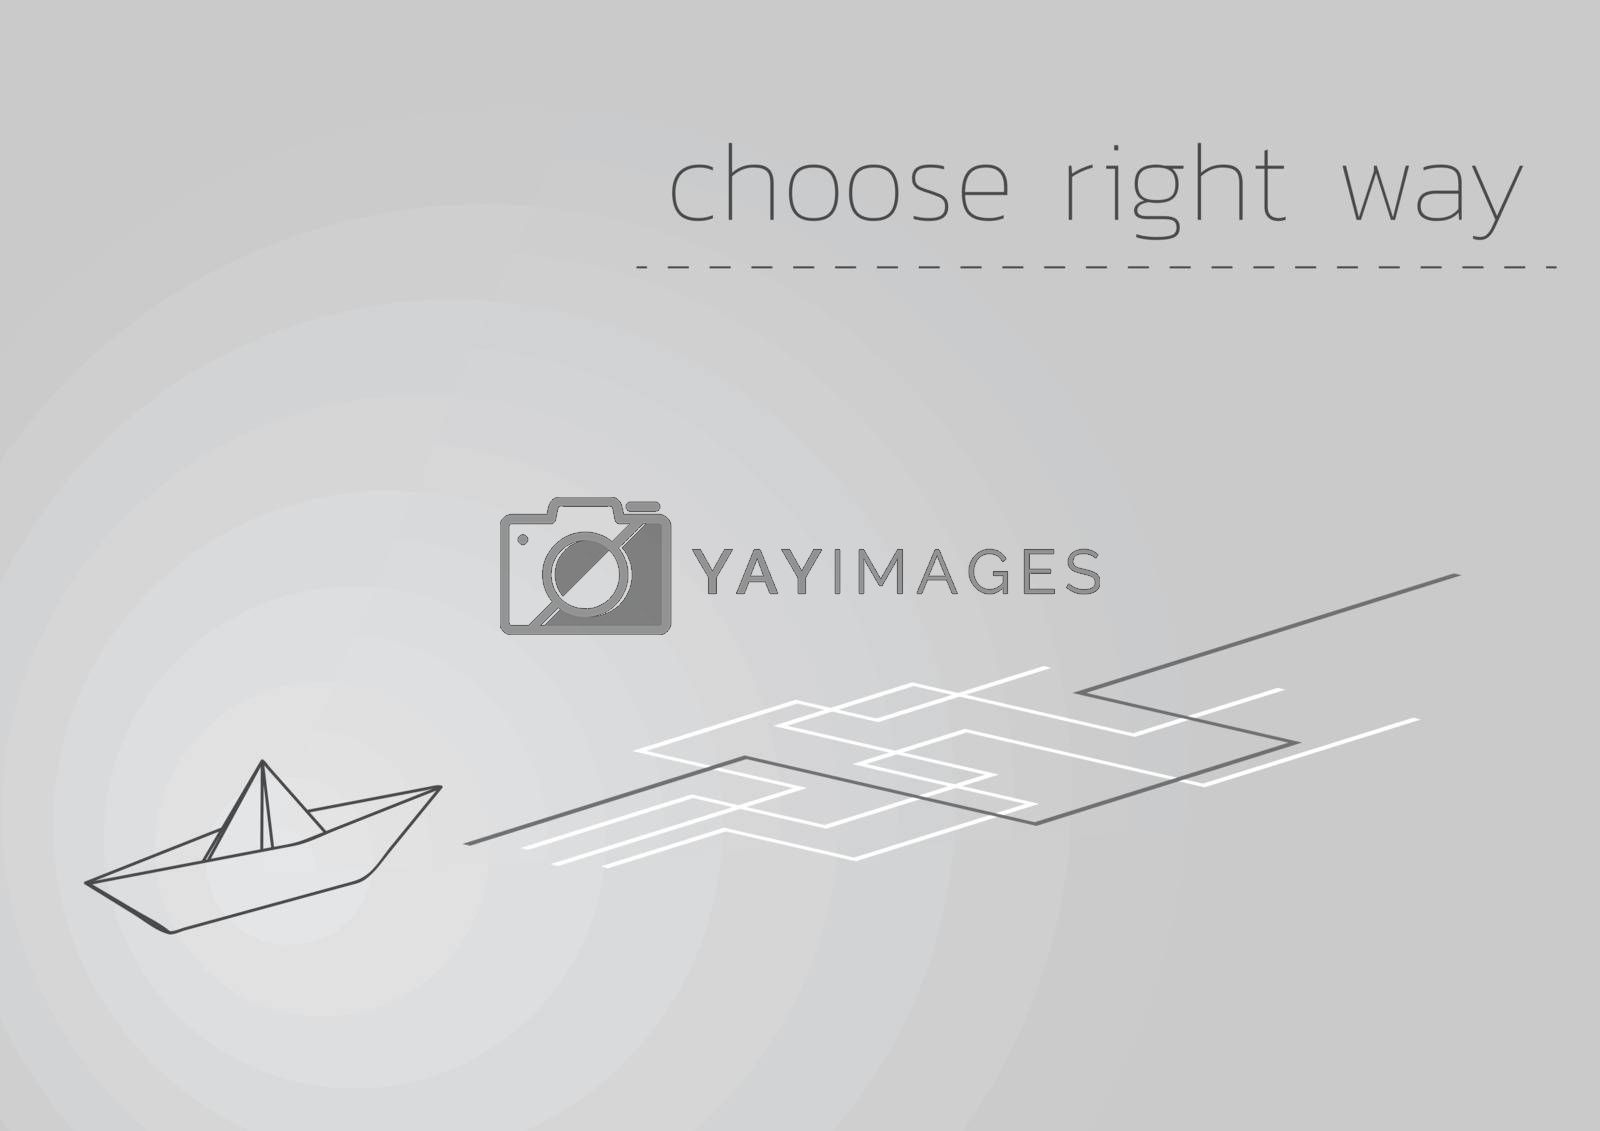 paper ship and choose right way by muuraa